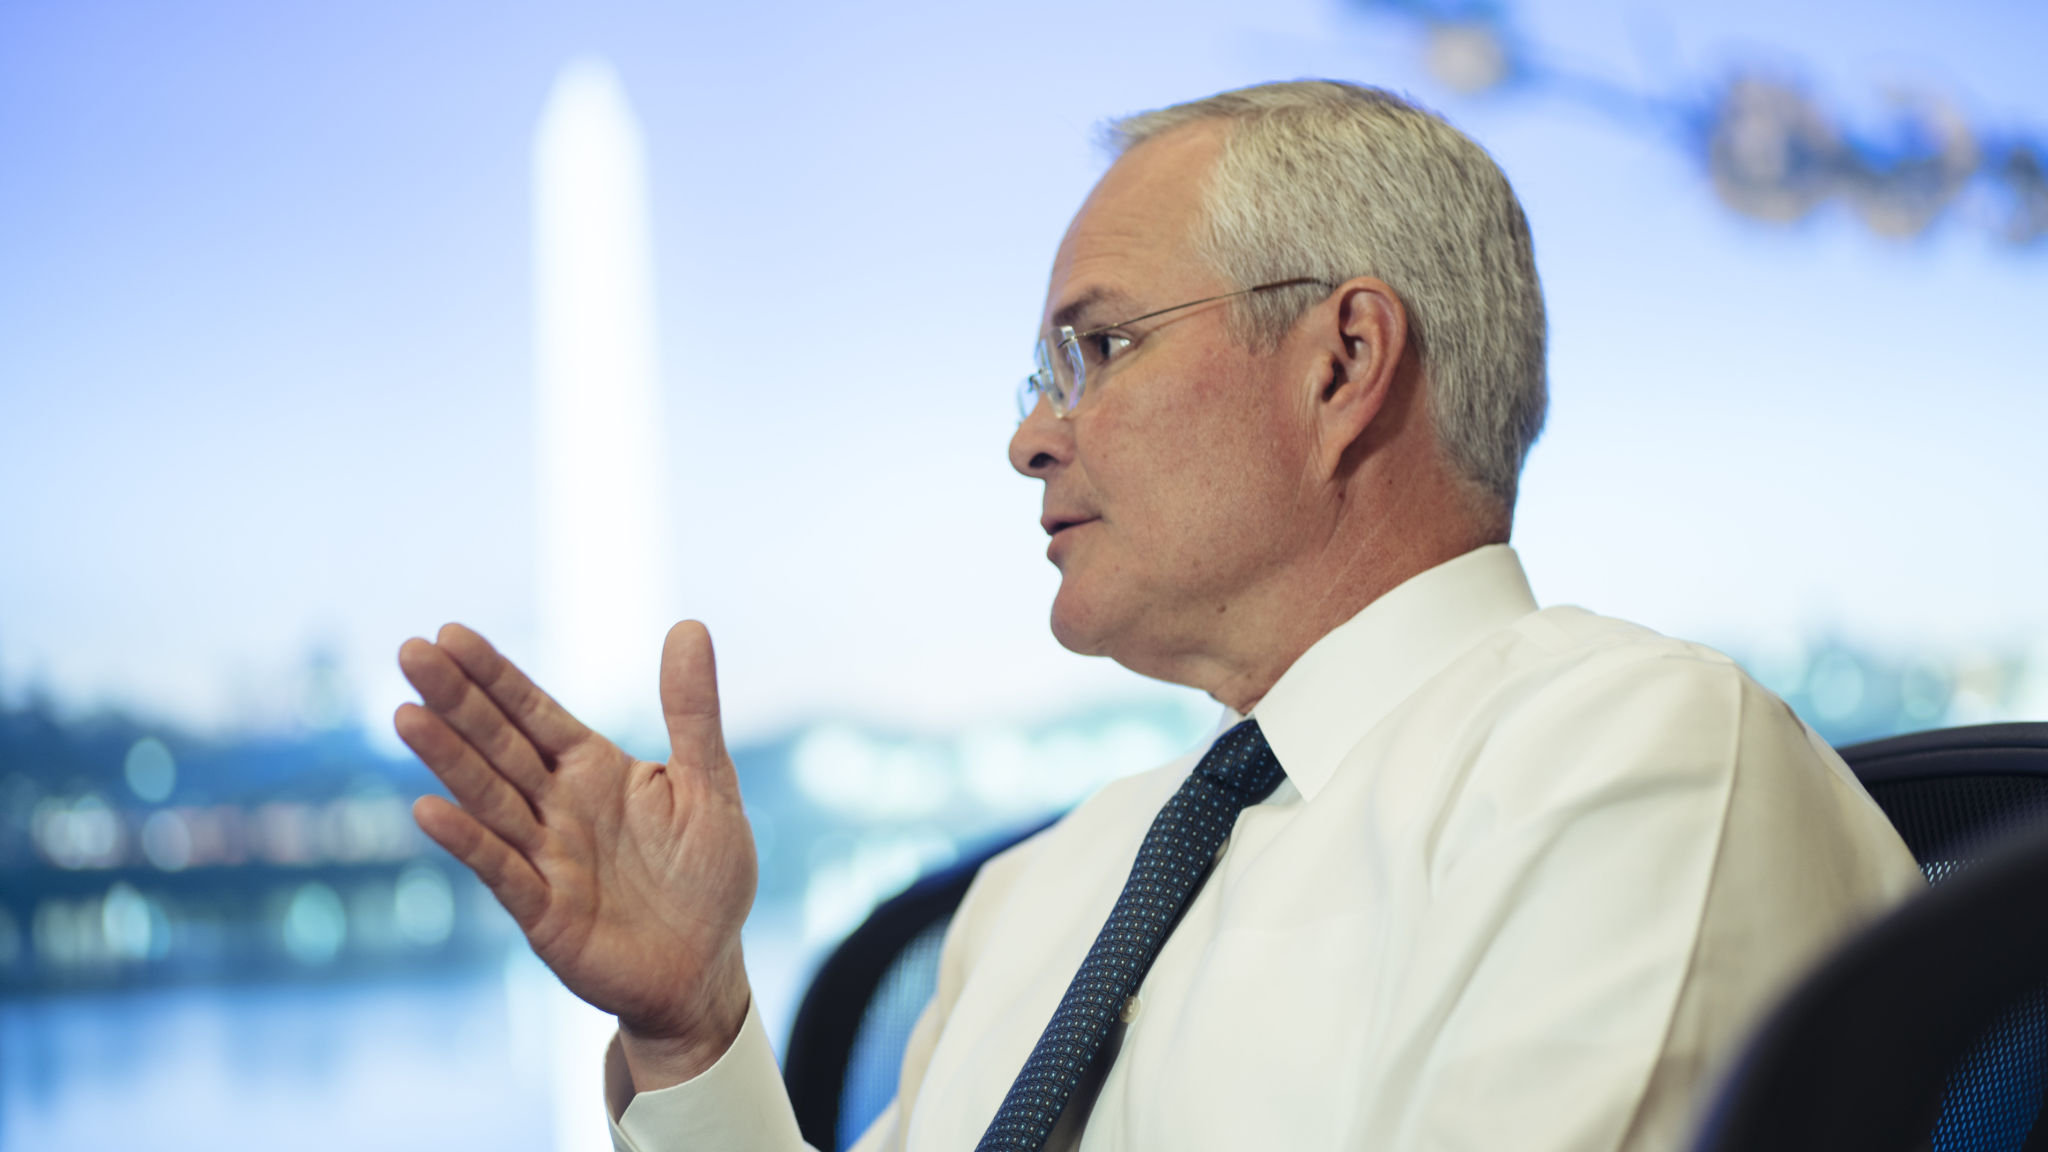 ExxonMobil's Darren Woods vows engagement and openness